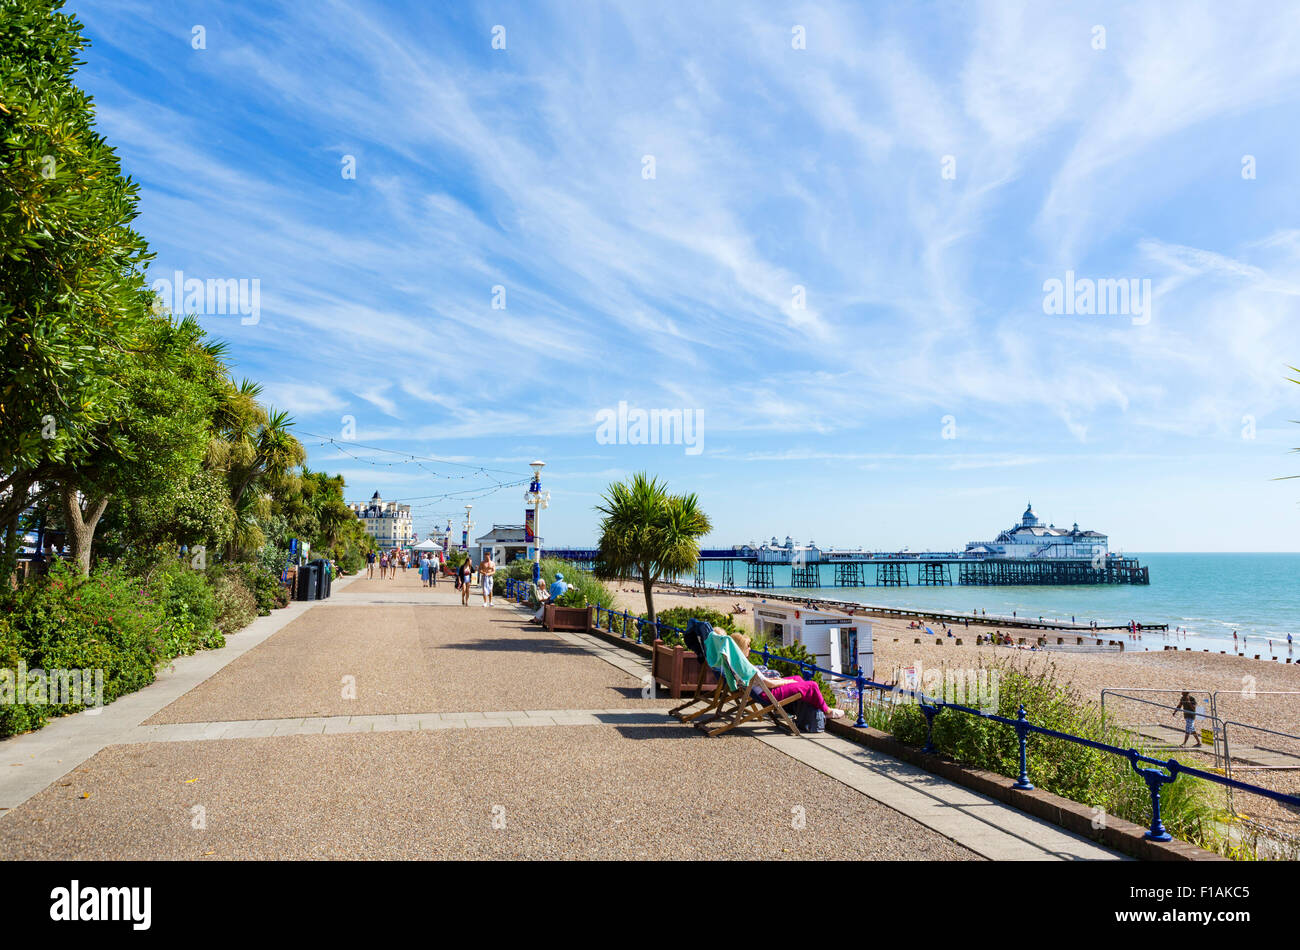 The seafront promenade and pier in Eastbourne, East Sussex England, UK - Stock Image